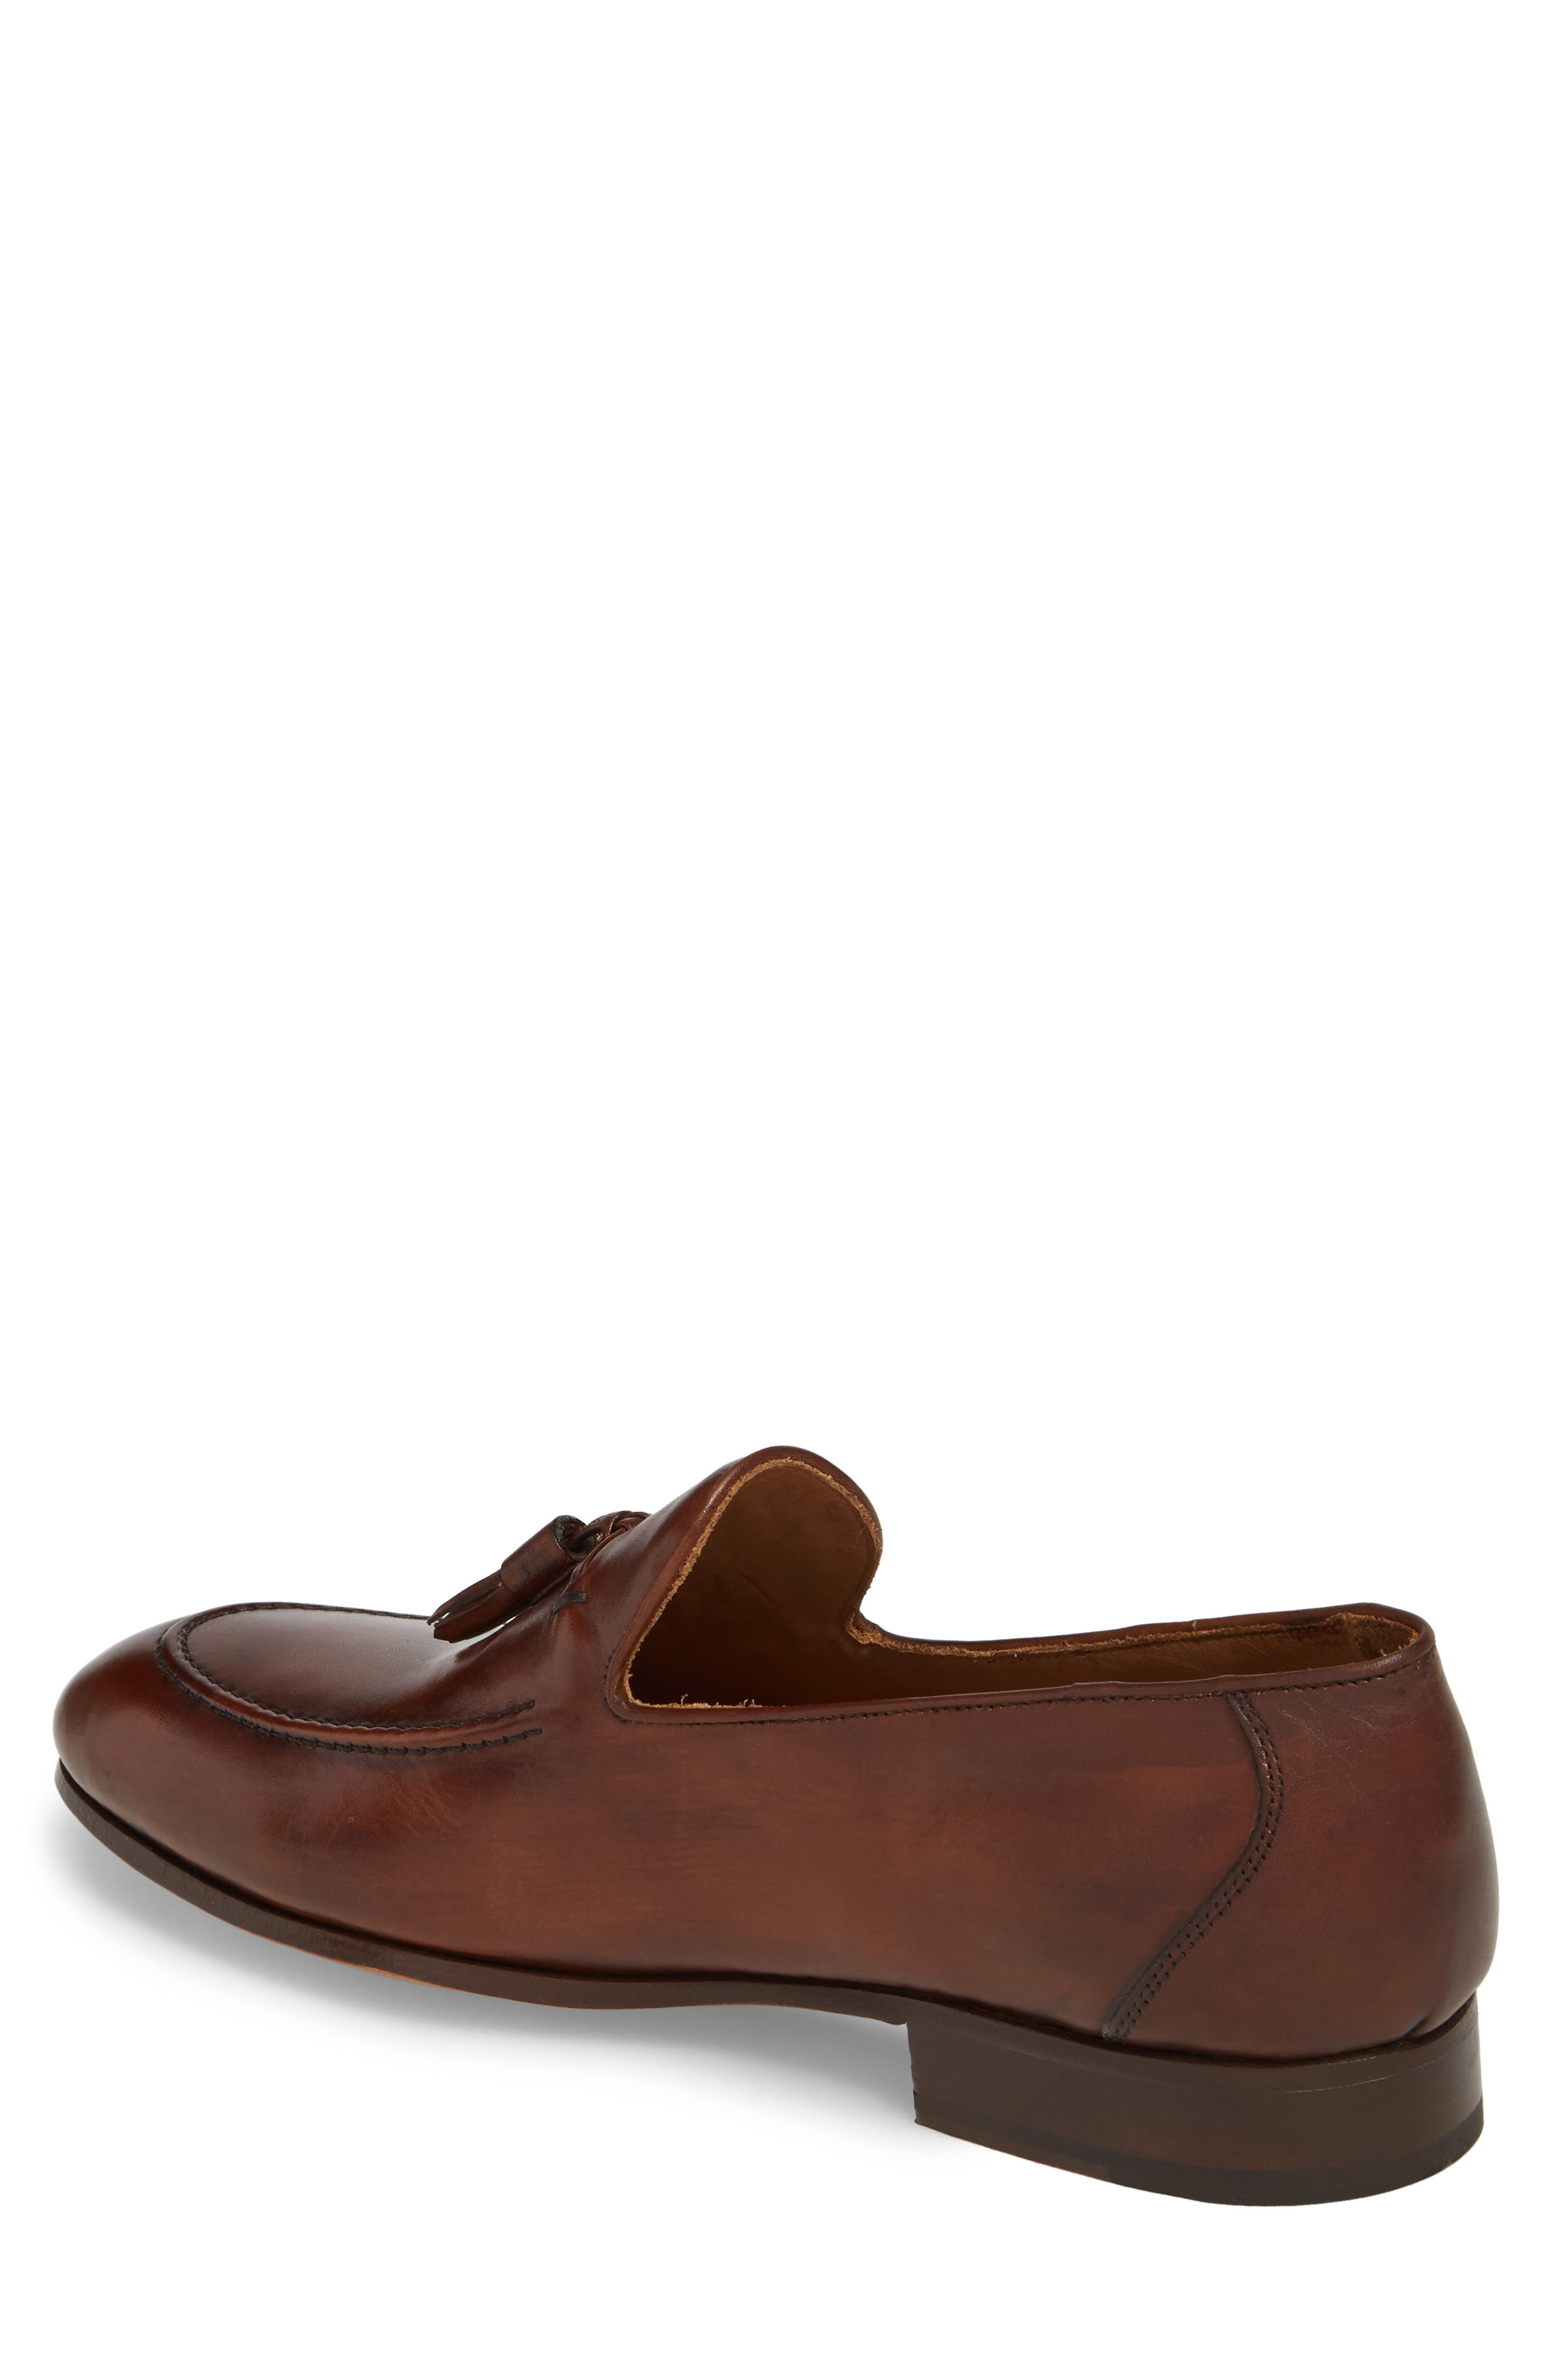 Ario Tassel Loafer,                             Alternate thumbnail 2, color,                             BROWN LEATHER